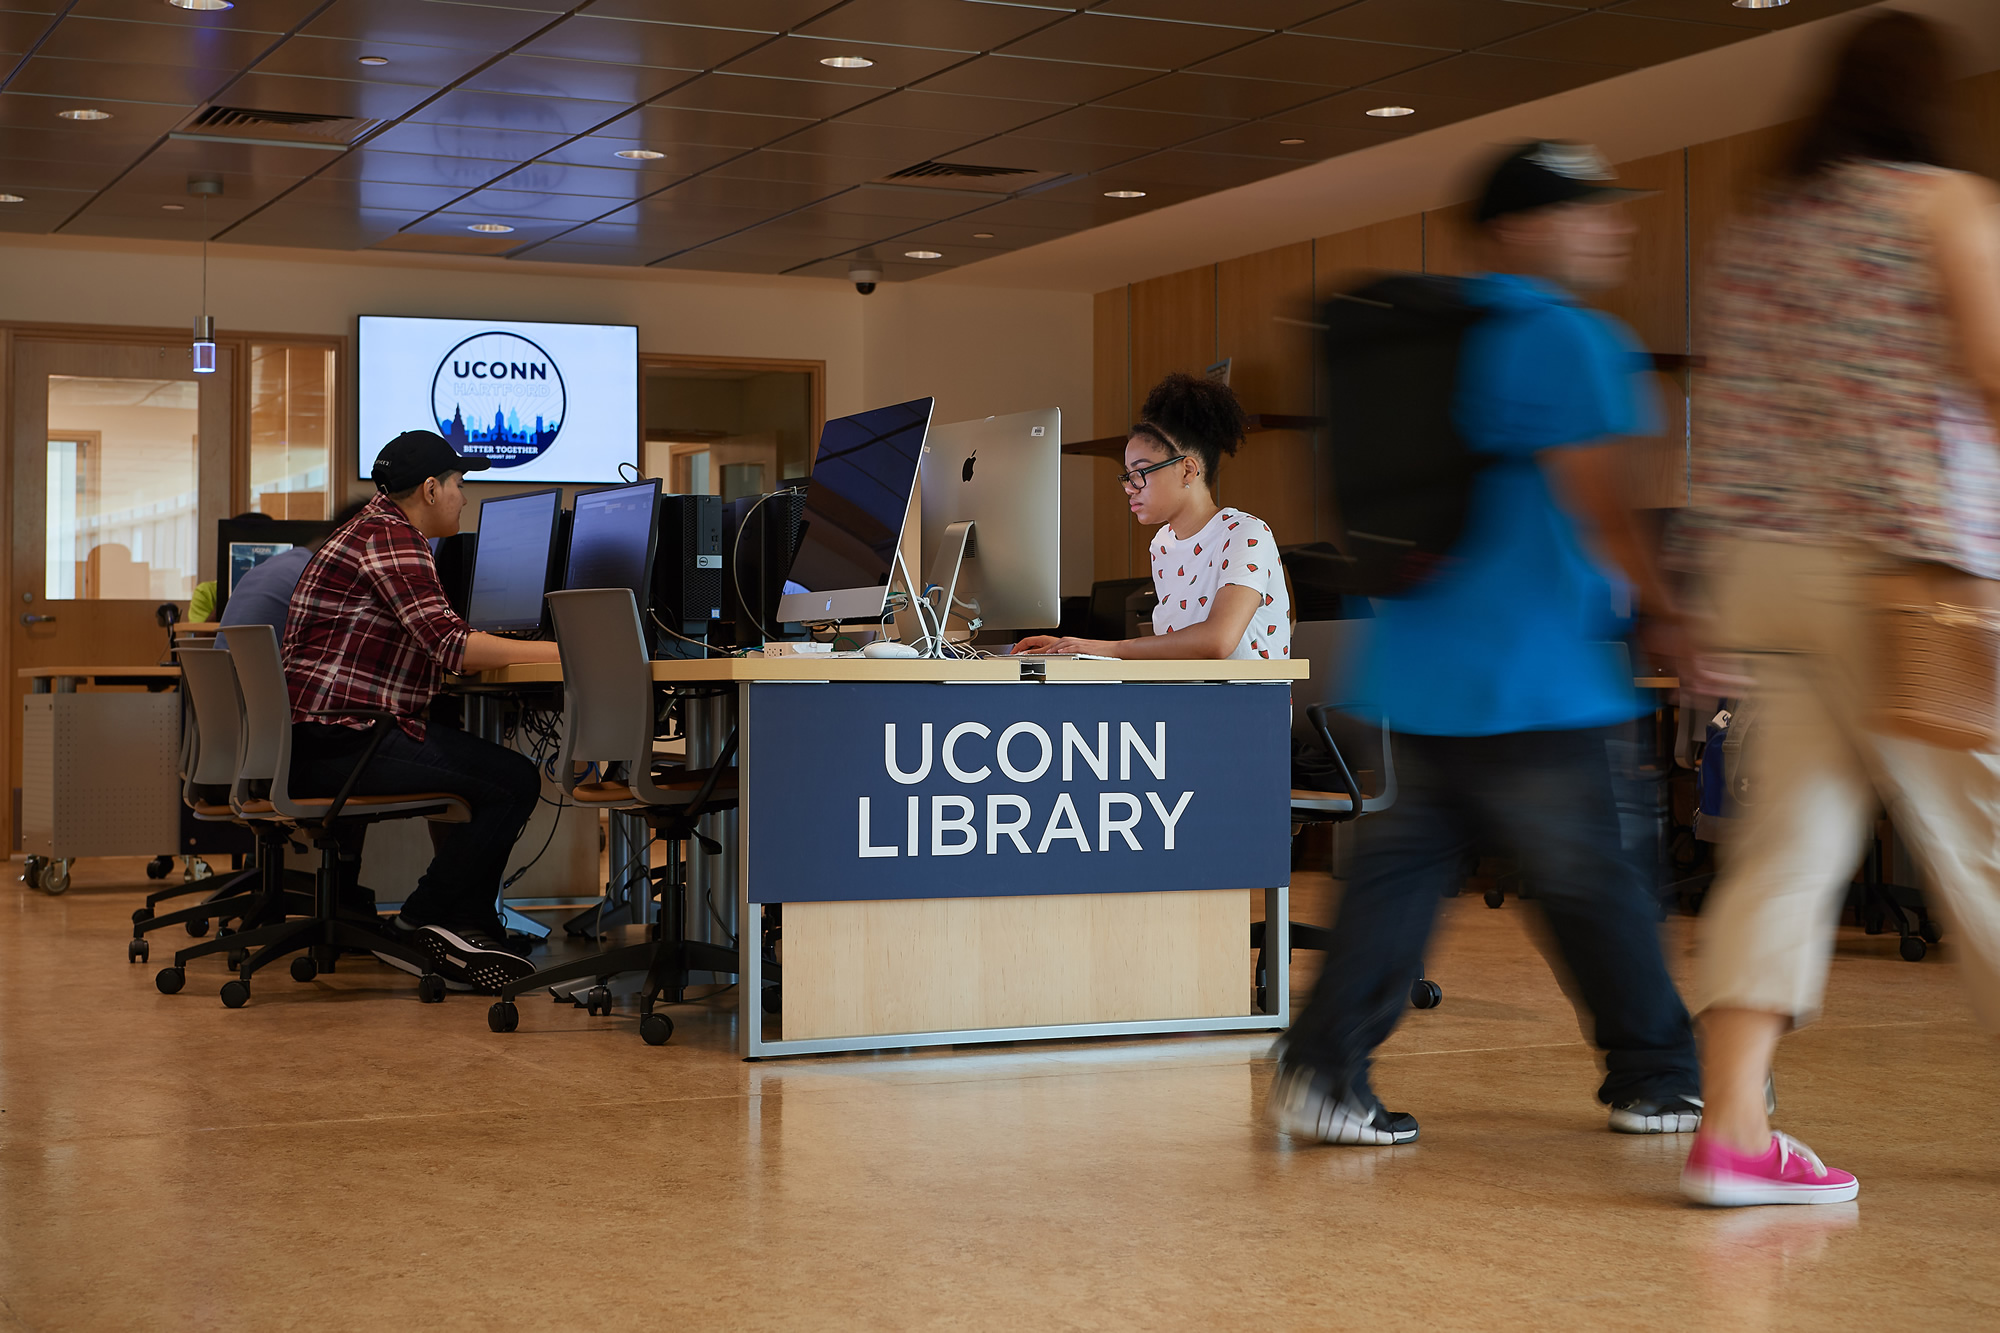 UConn_Library_at_Hartford_Public_Library_Public_Computing_June_2018